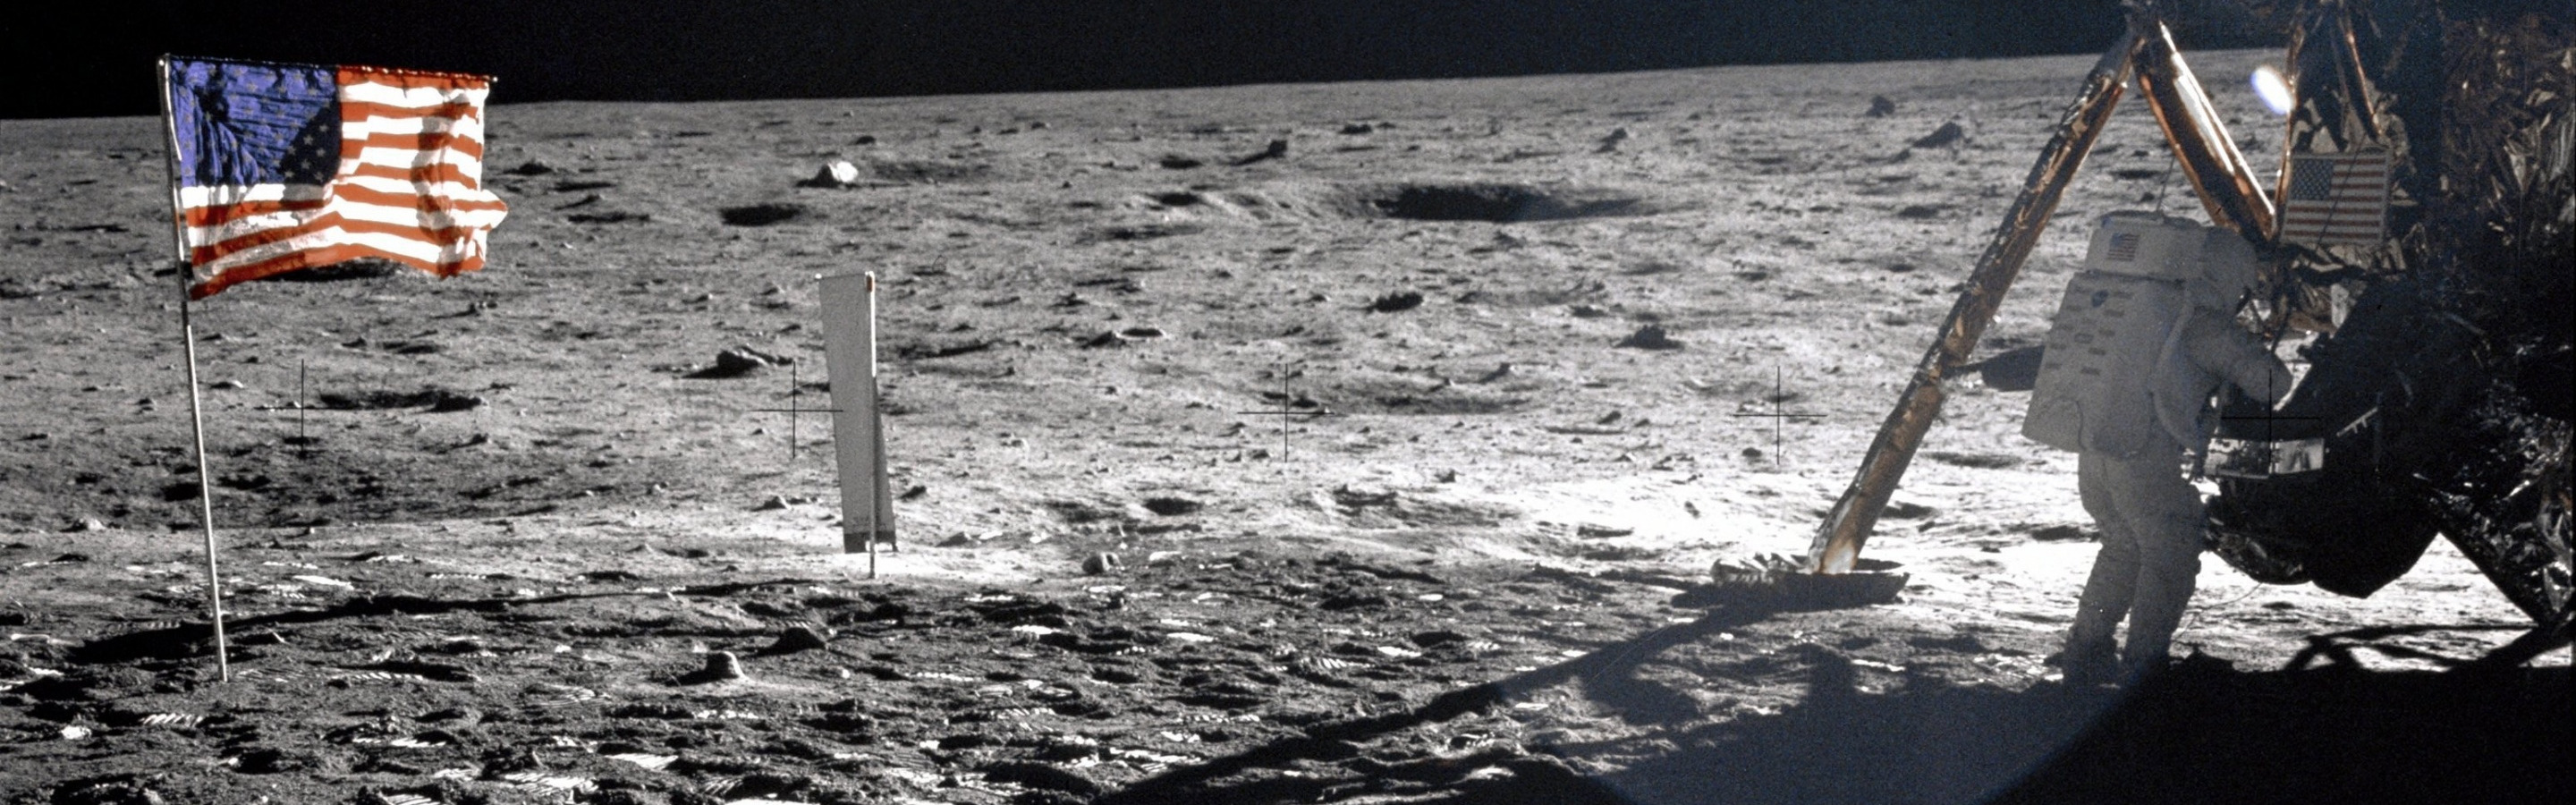 neil armstrong on the moon - 1920×687